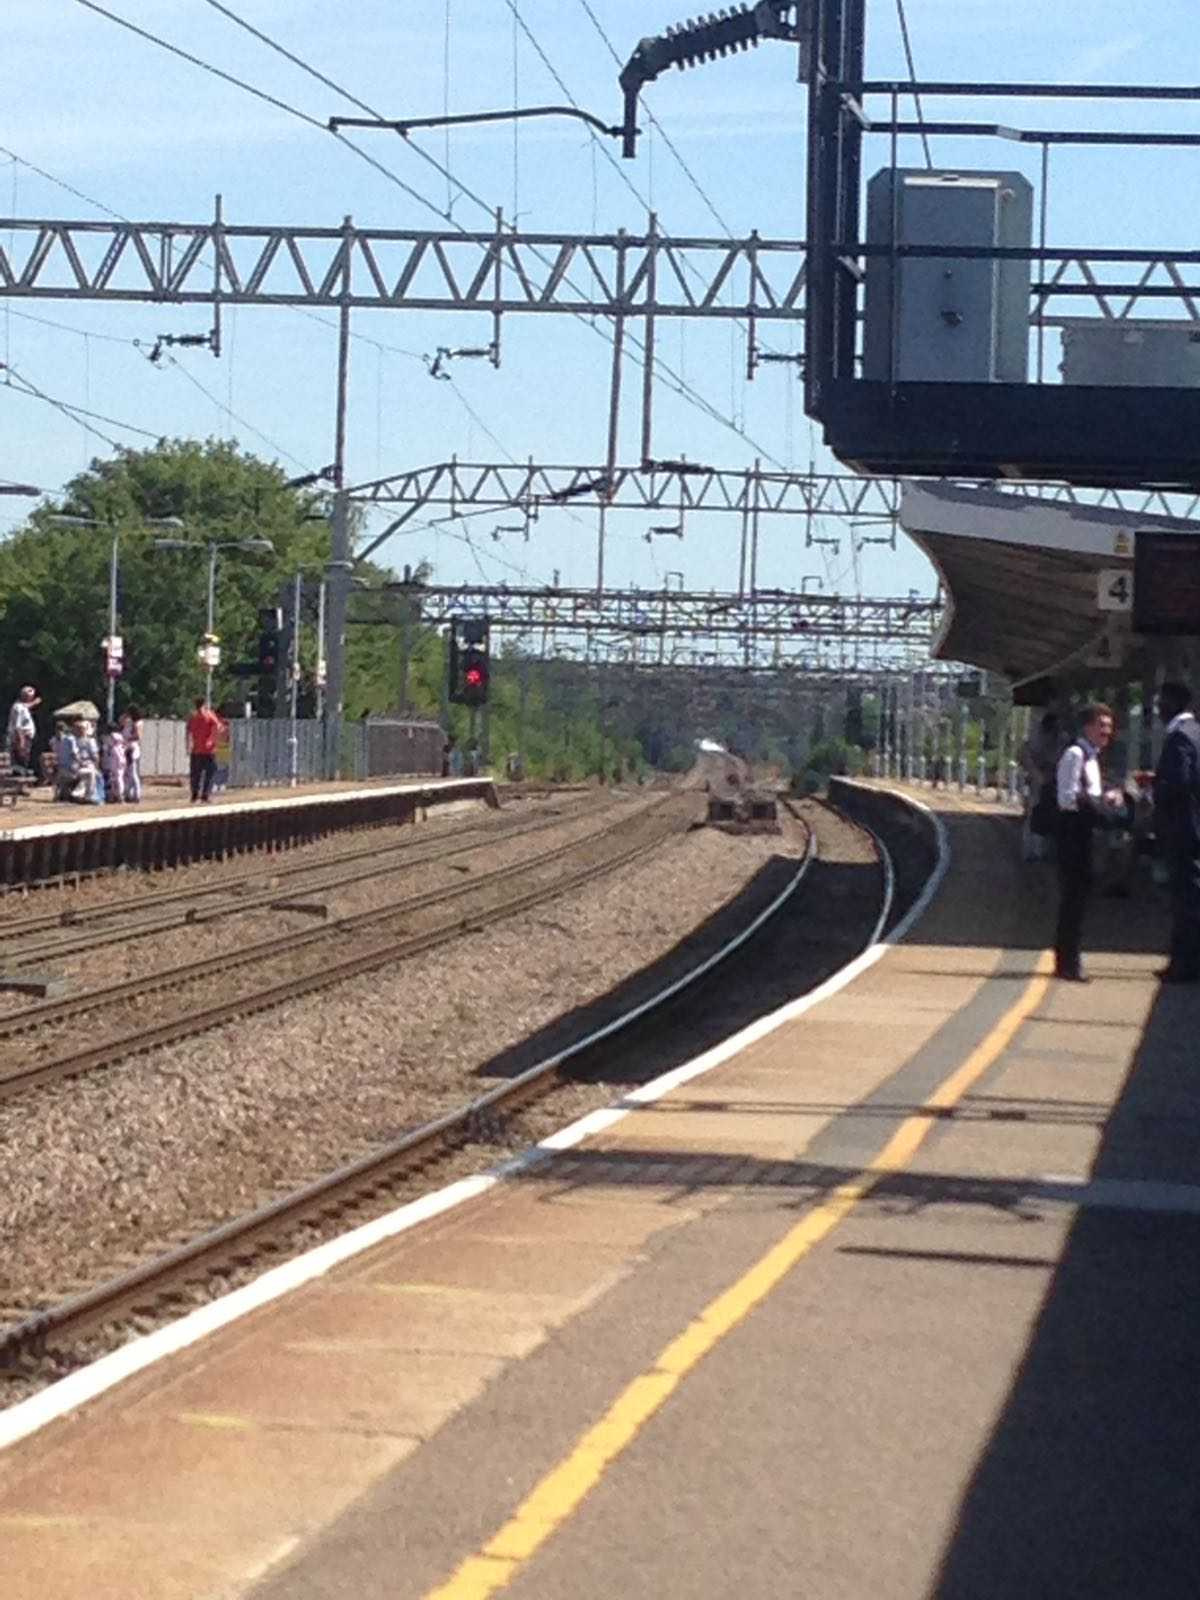 Fire by railway line causes major disruption